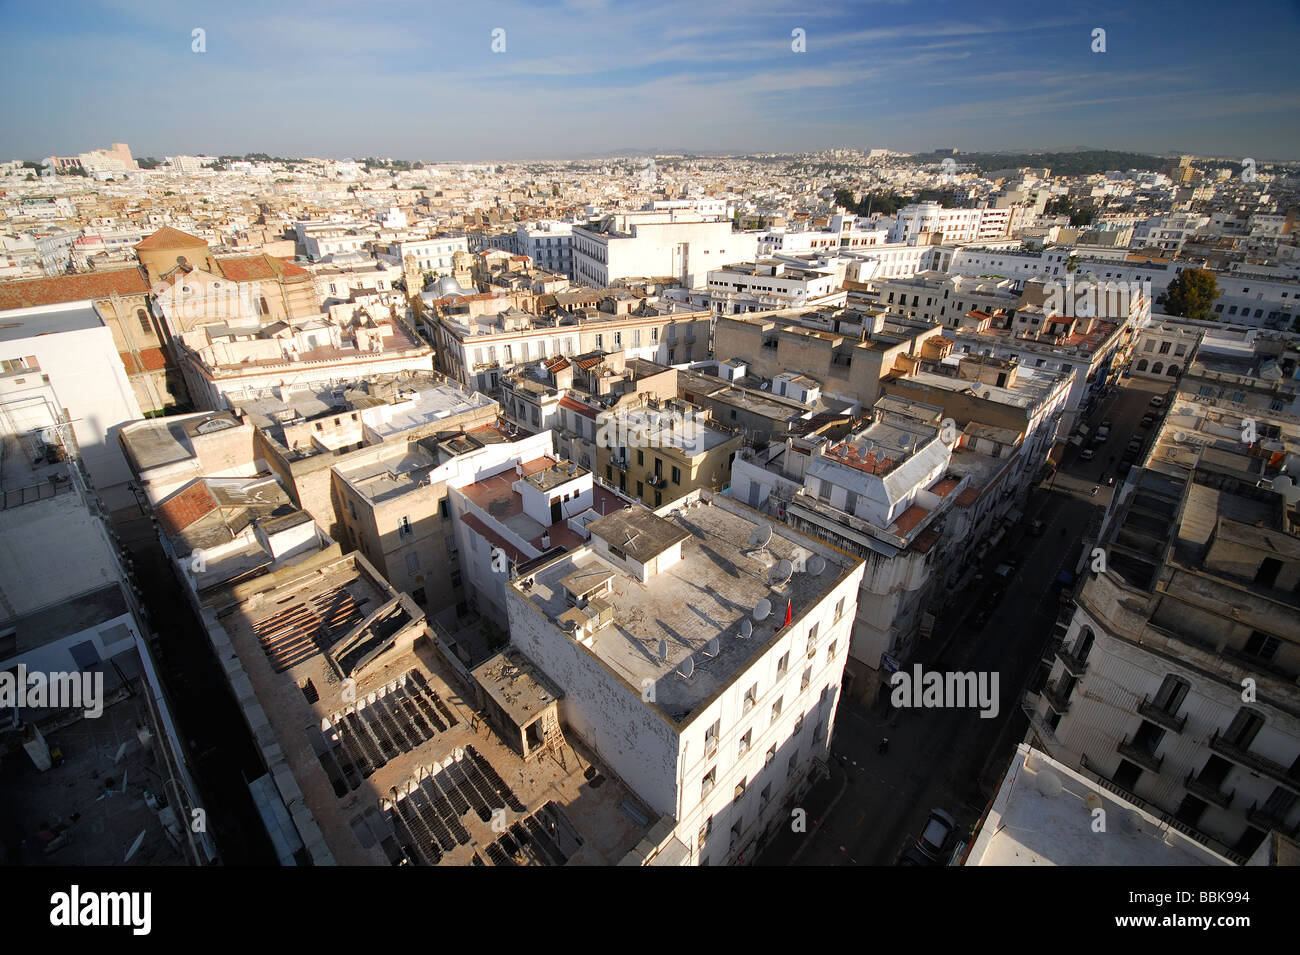 TUNIS, TUNISIA. An evening view over the city. 2009. - Stock Image